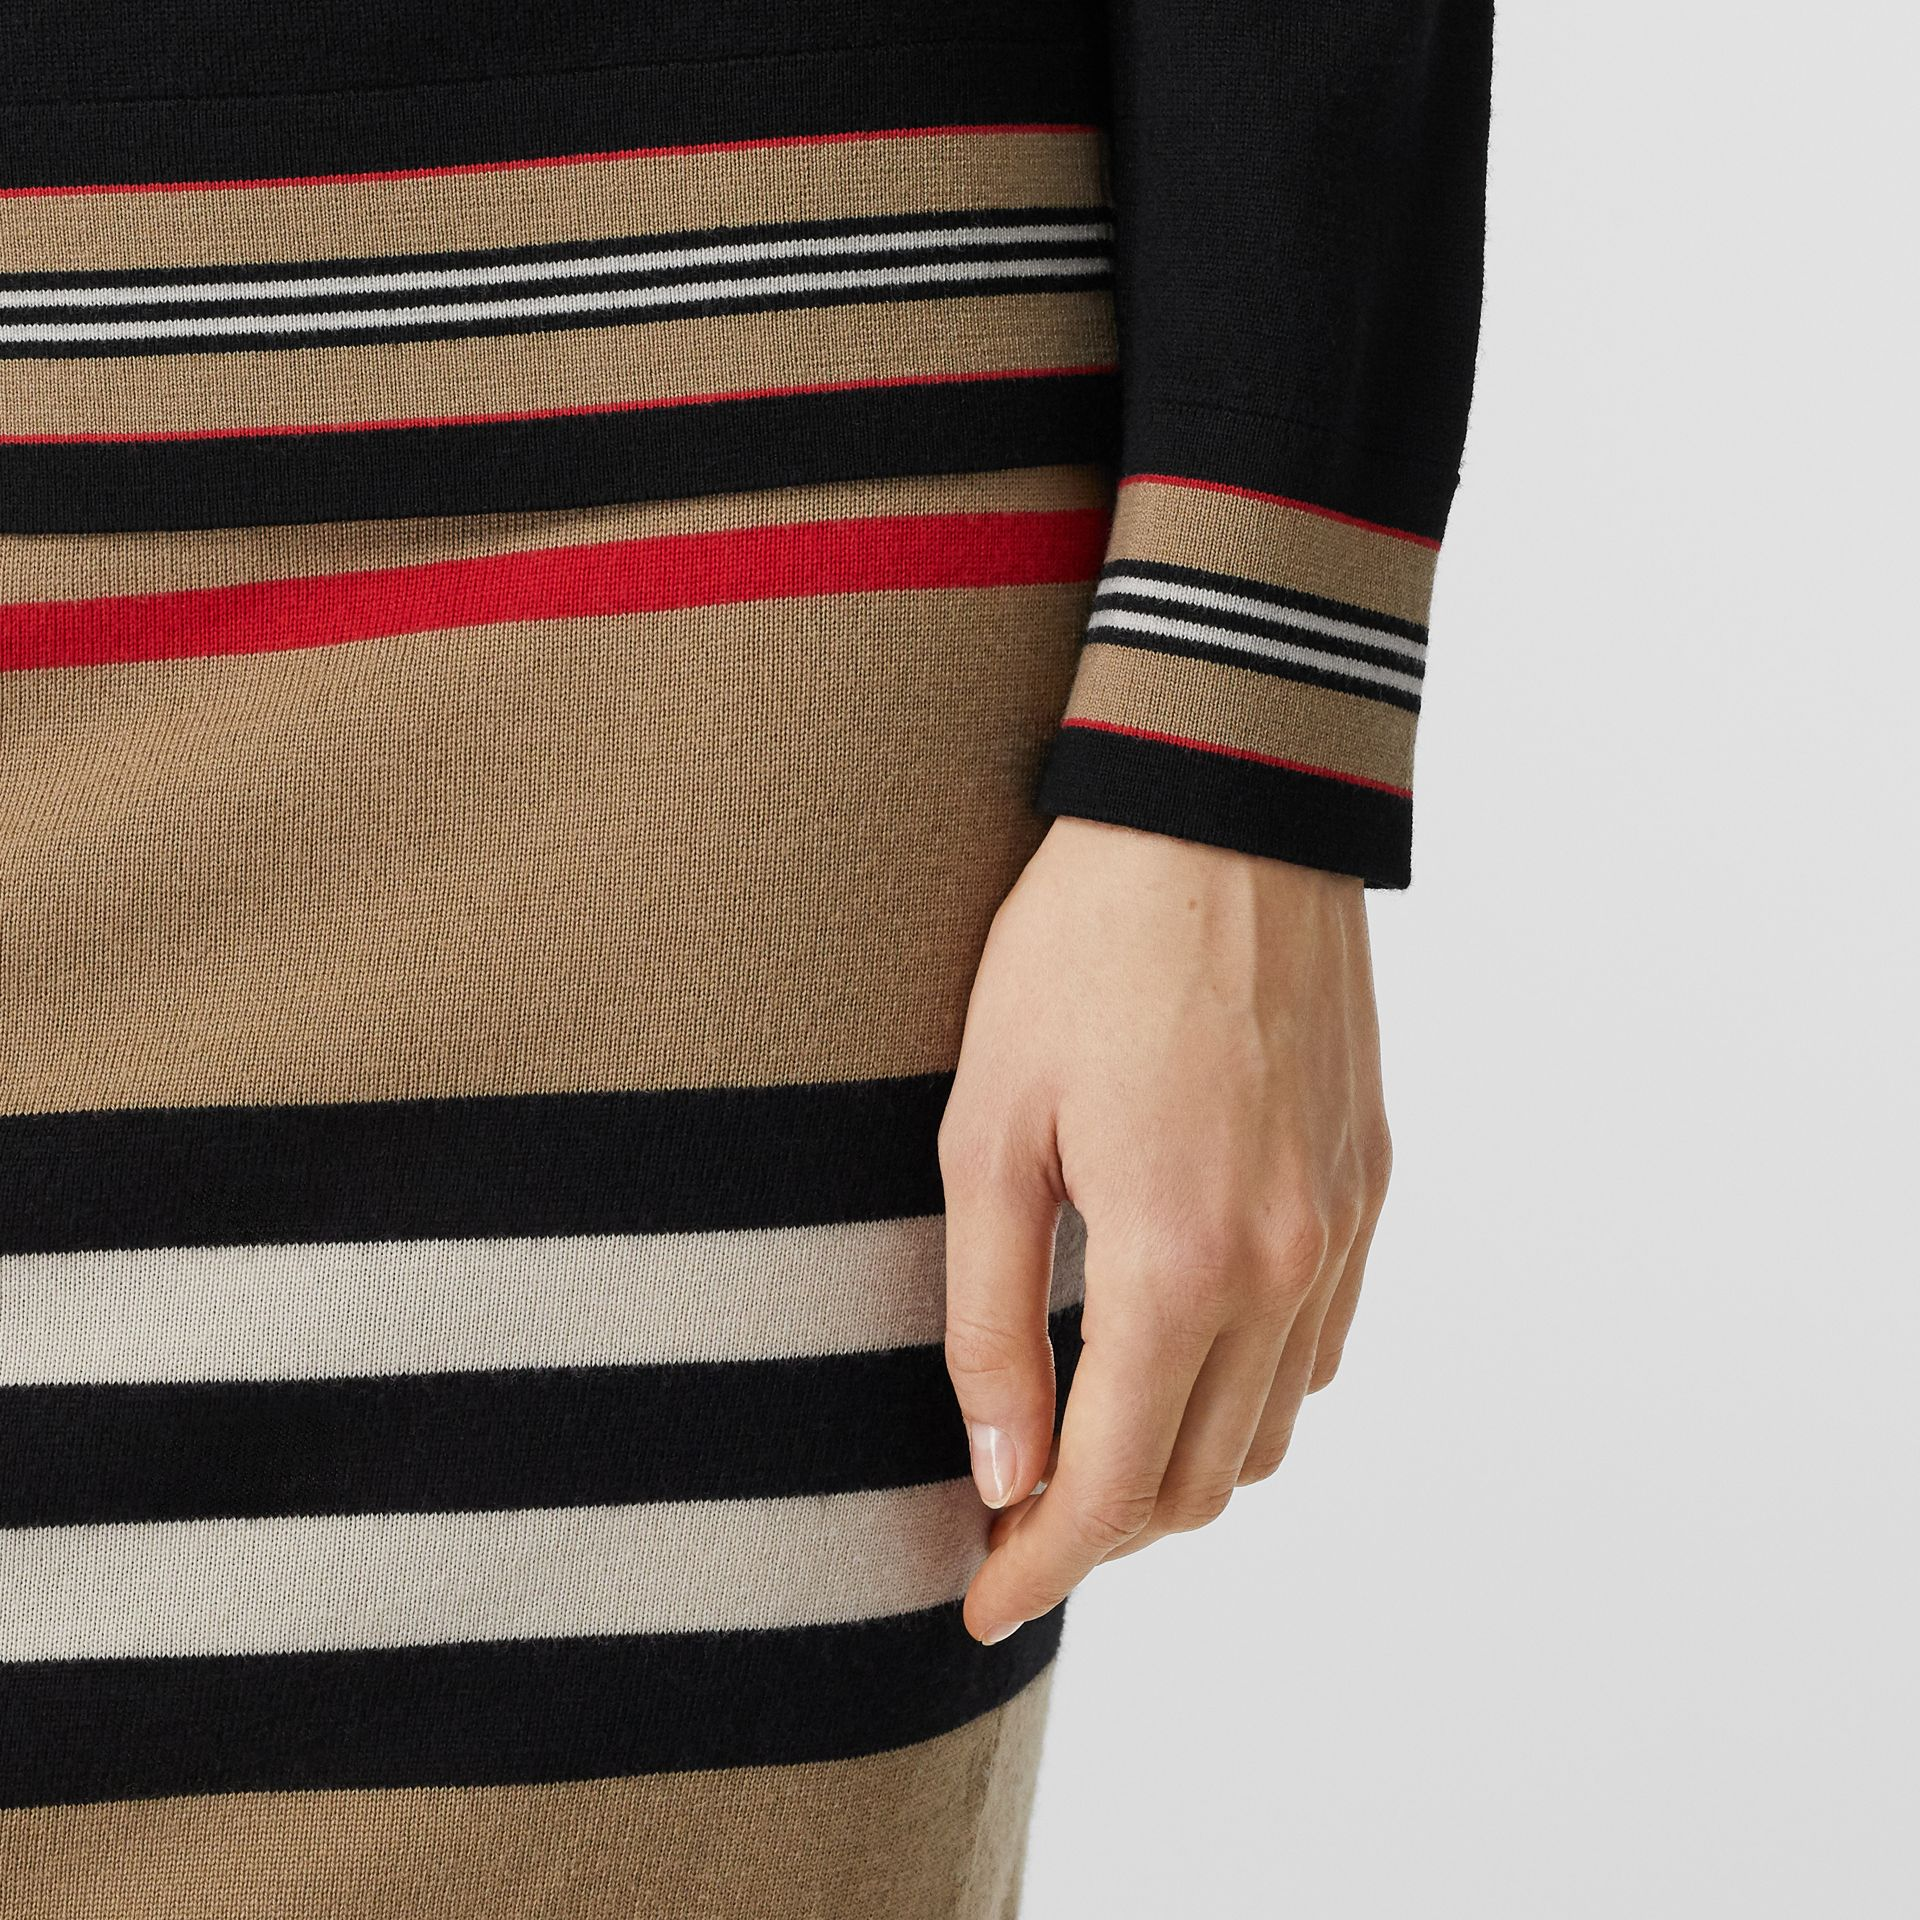 Icon Stripe Detail Merino Wool Sweater in Black - Women | Burberry Hong Kong S.A.R - gallery image 1